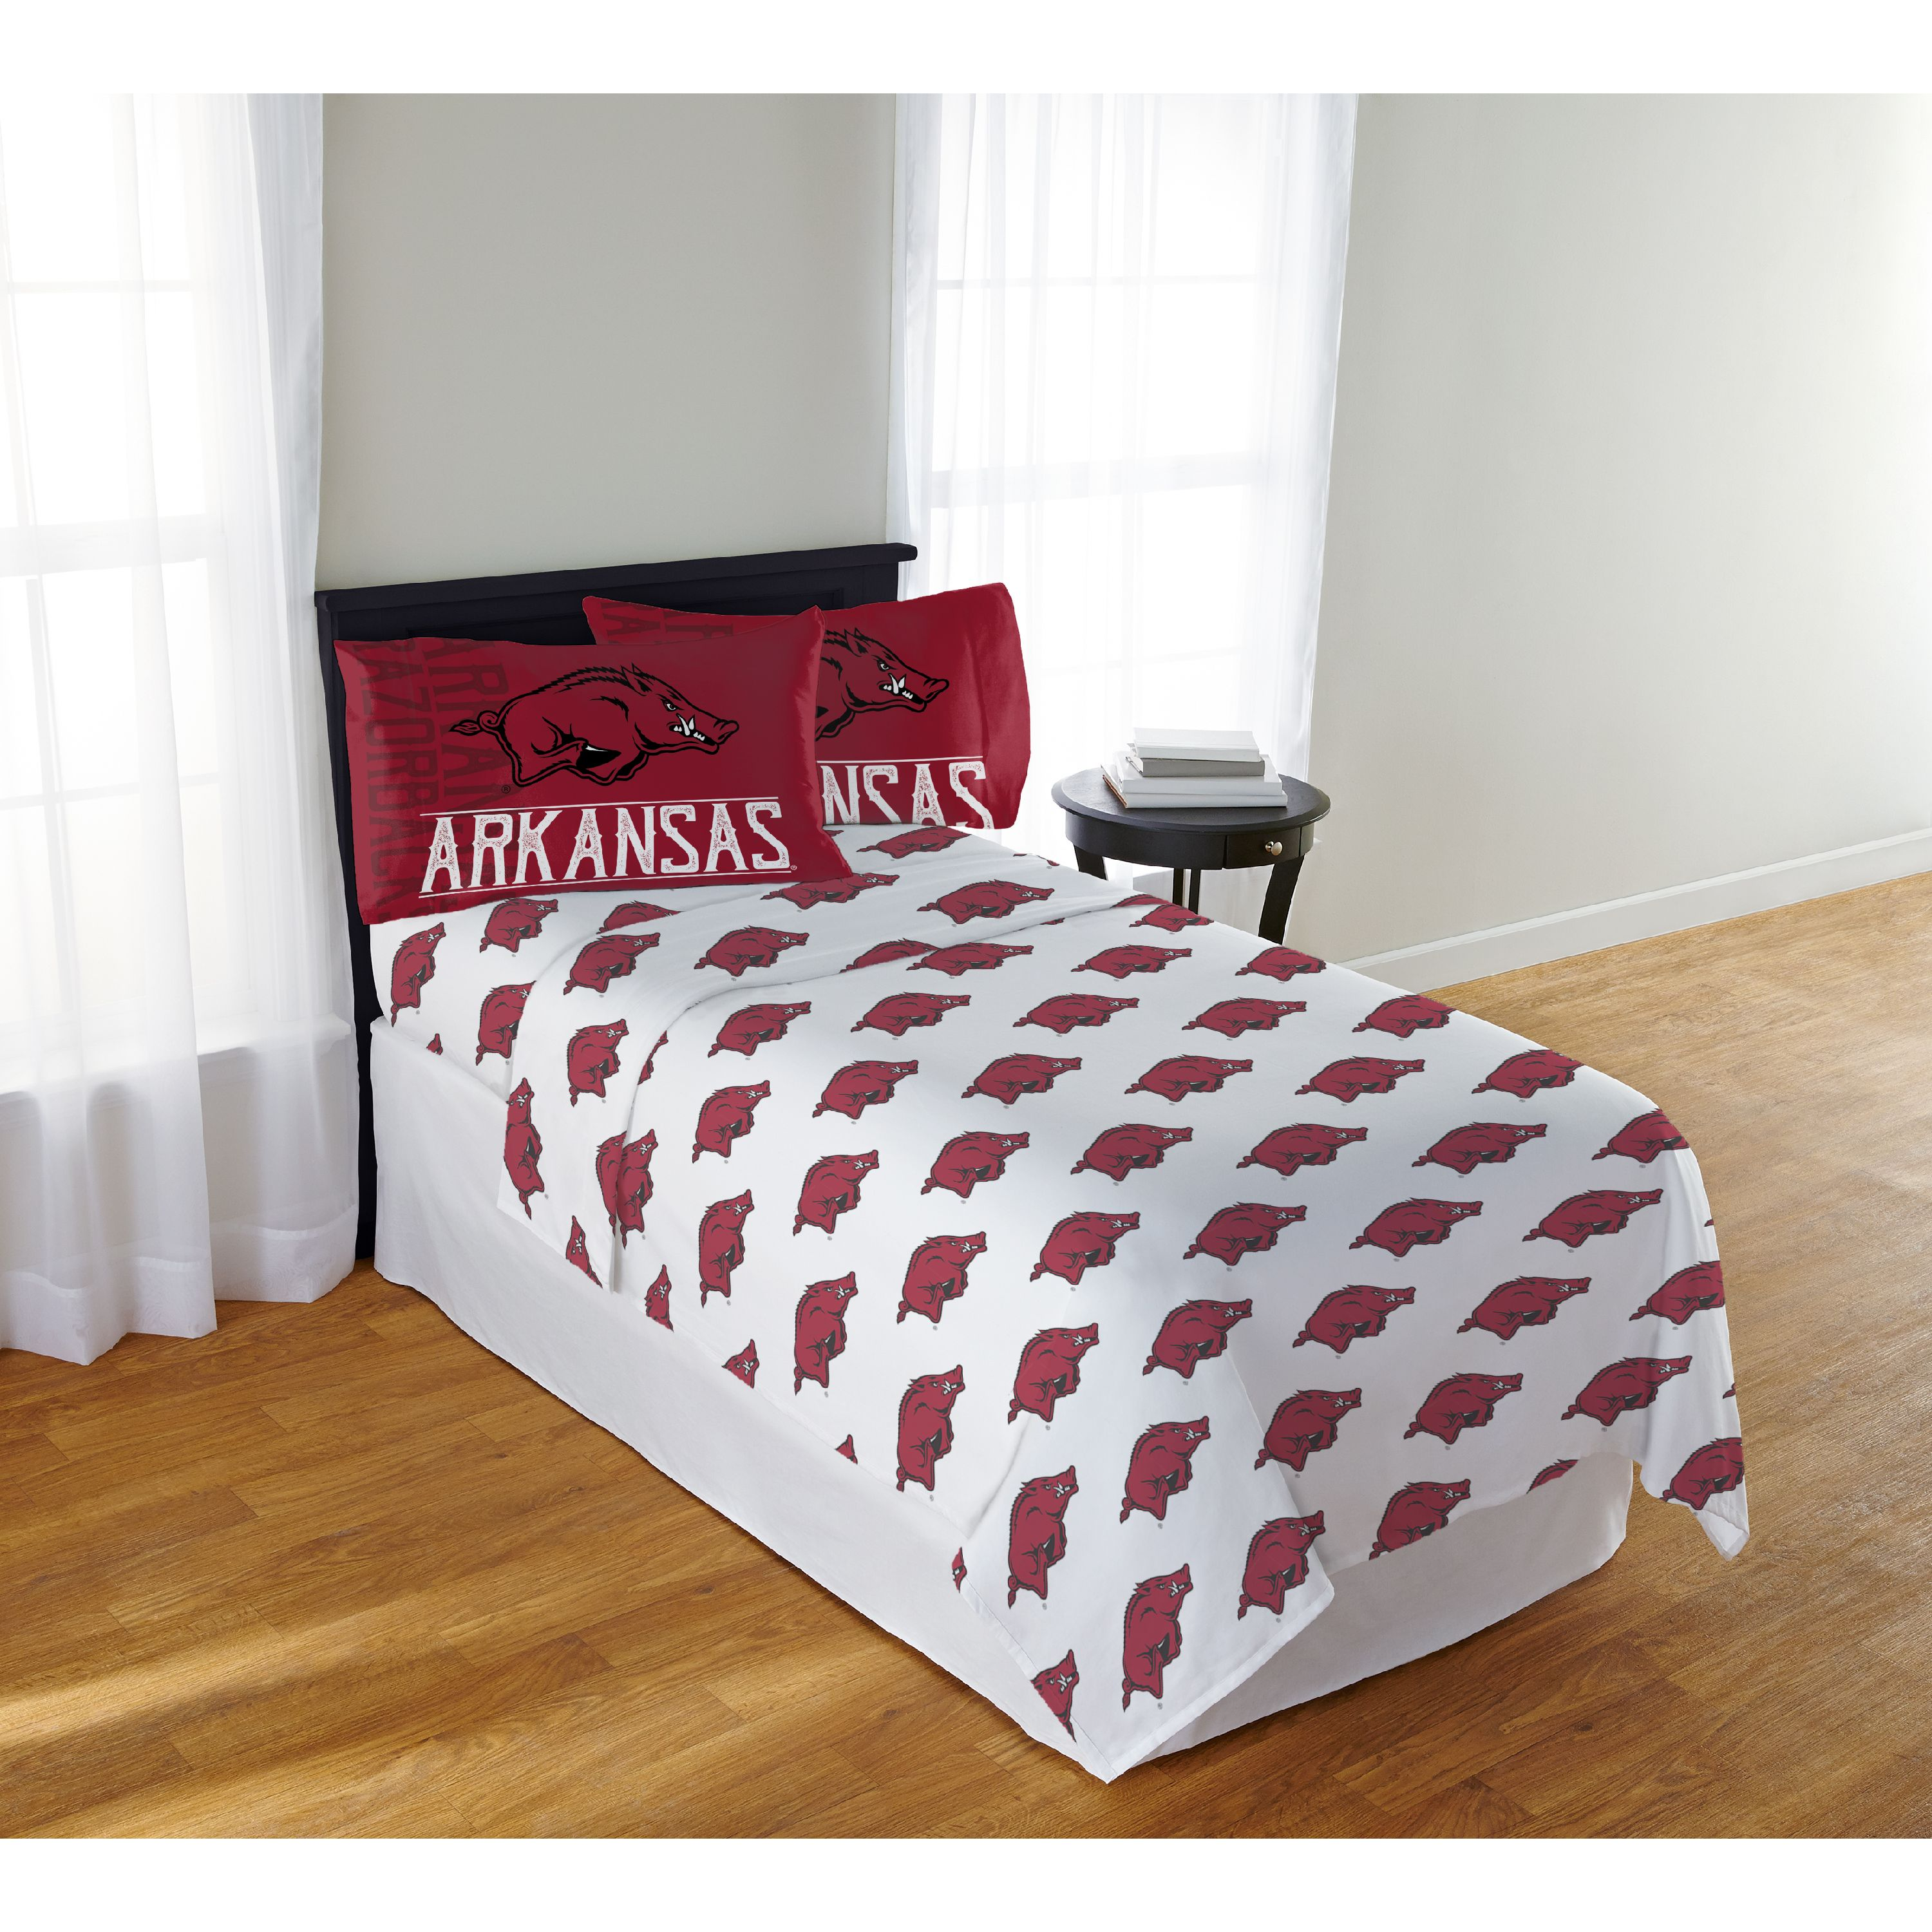 "NCAA Arkansas Razorbacks ""Affiliation"" Full Sheet Set"